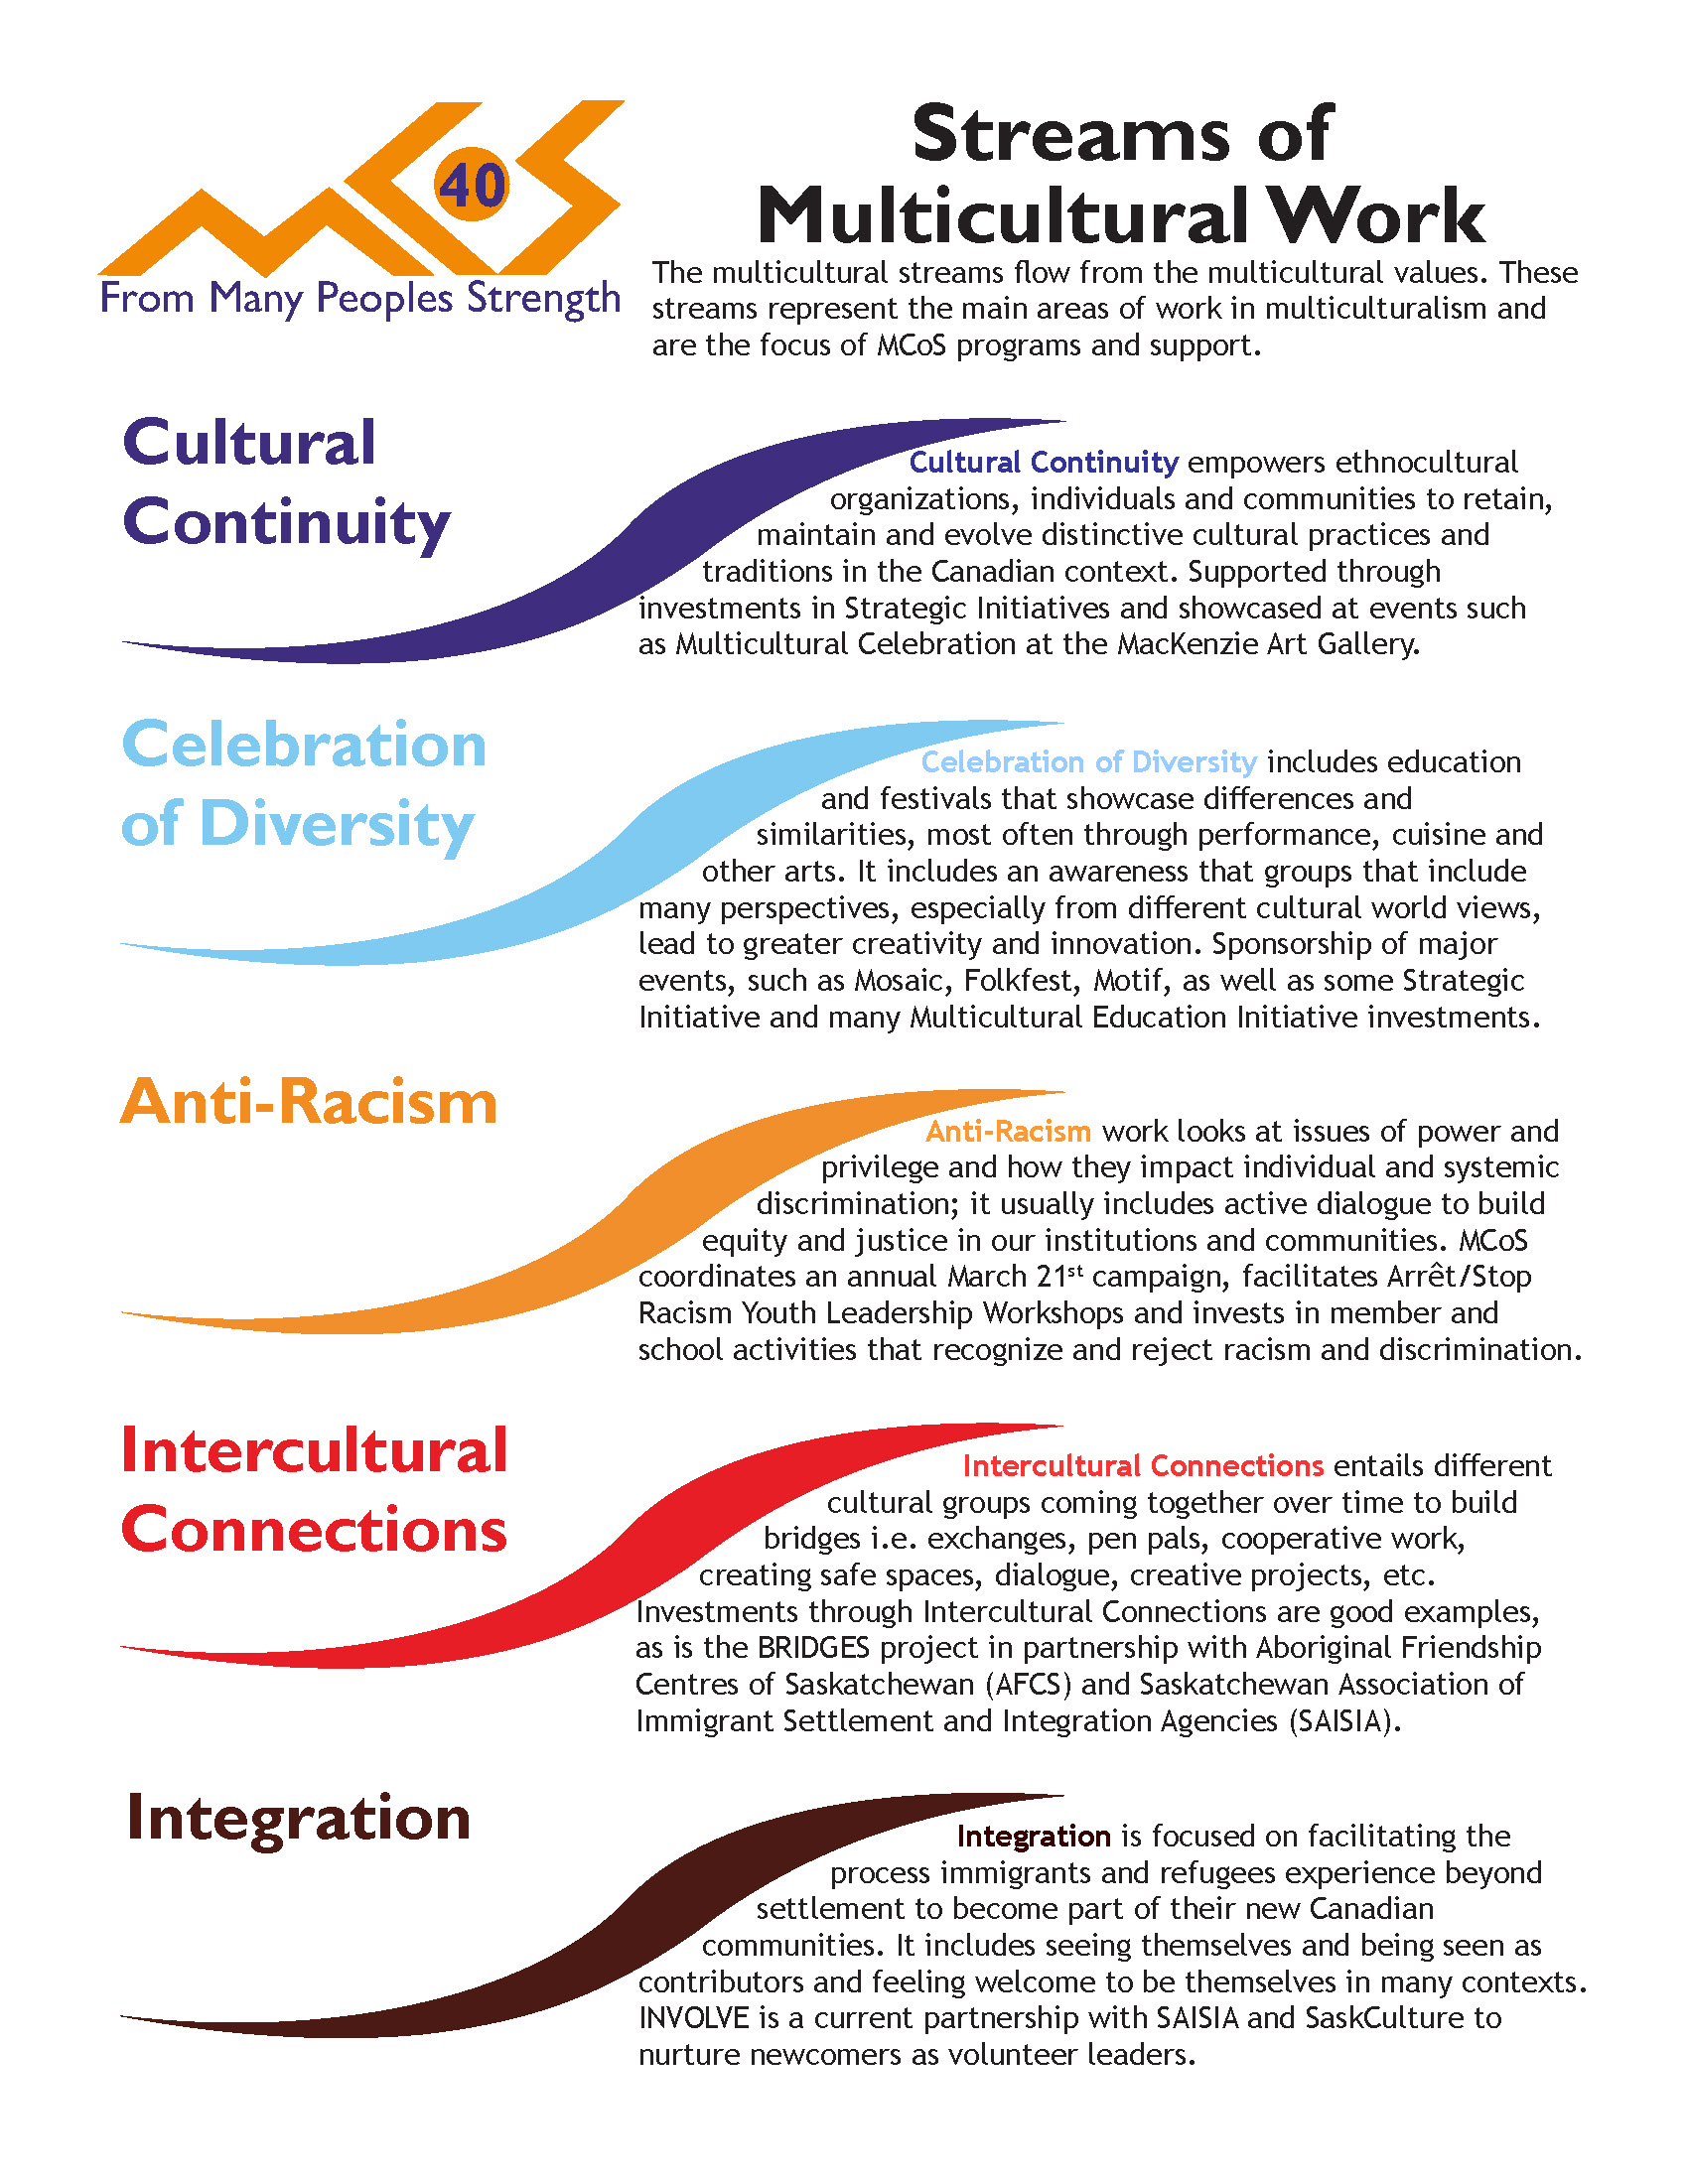 Multicultural Values And Streams